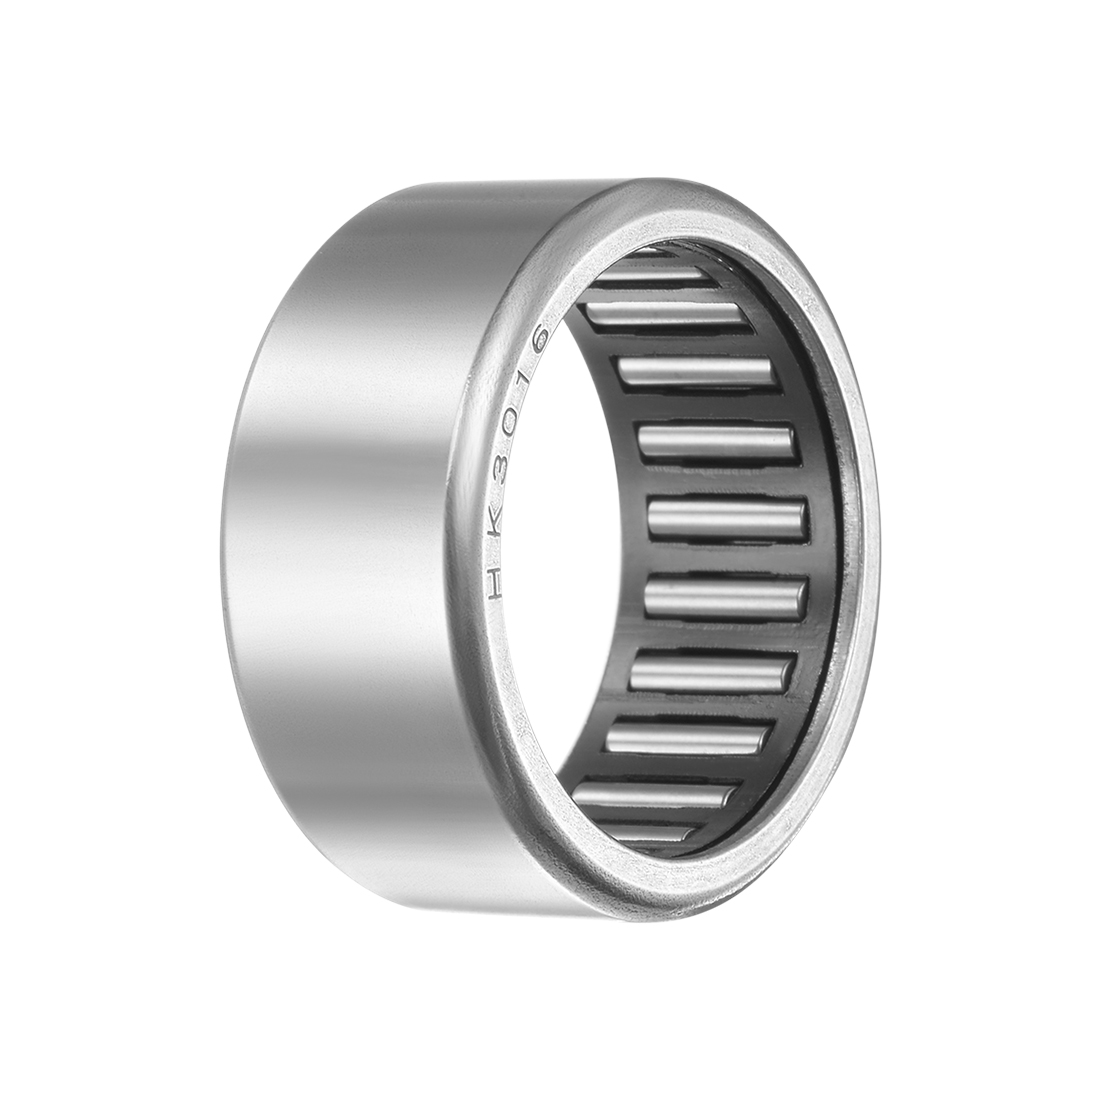 HK3016 Drawn Cup Needle Roller Bearings 30mm Bore, 37mm OD, 16mm Width